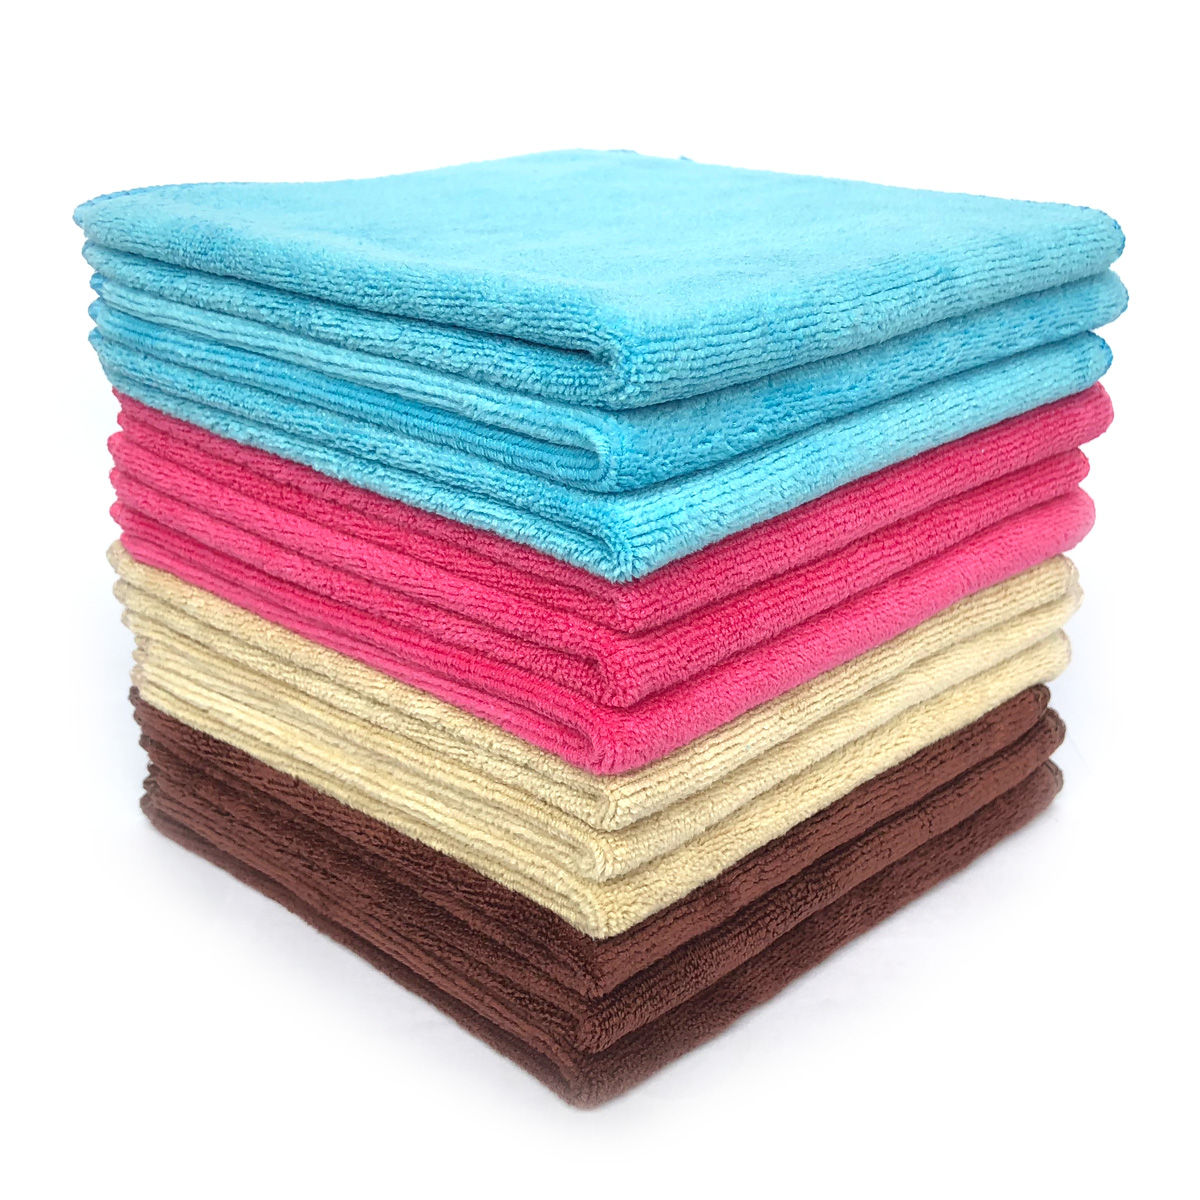 Multi-purpose Microfiber Cleaning Cloths Washcloths 12 Pack (Multi)